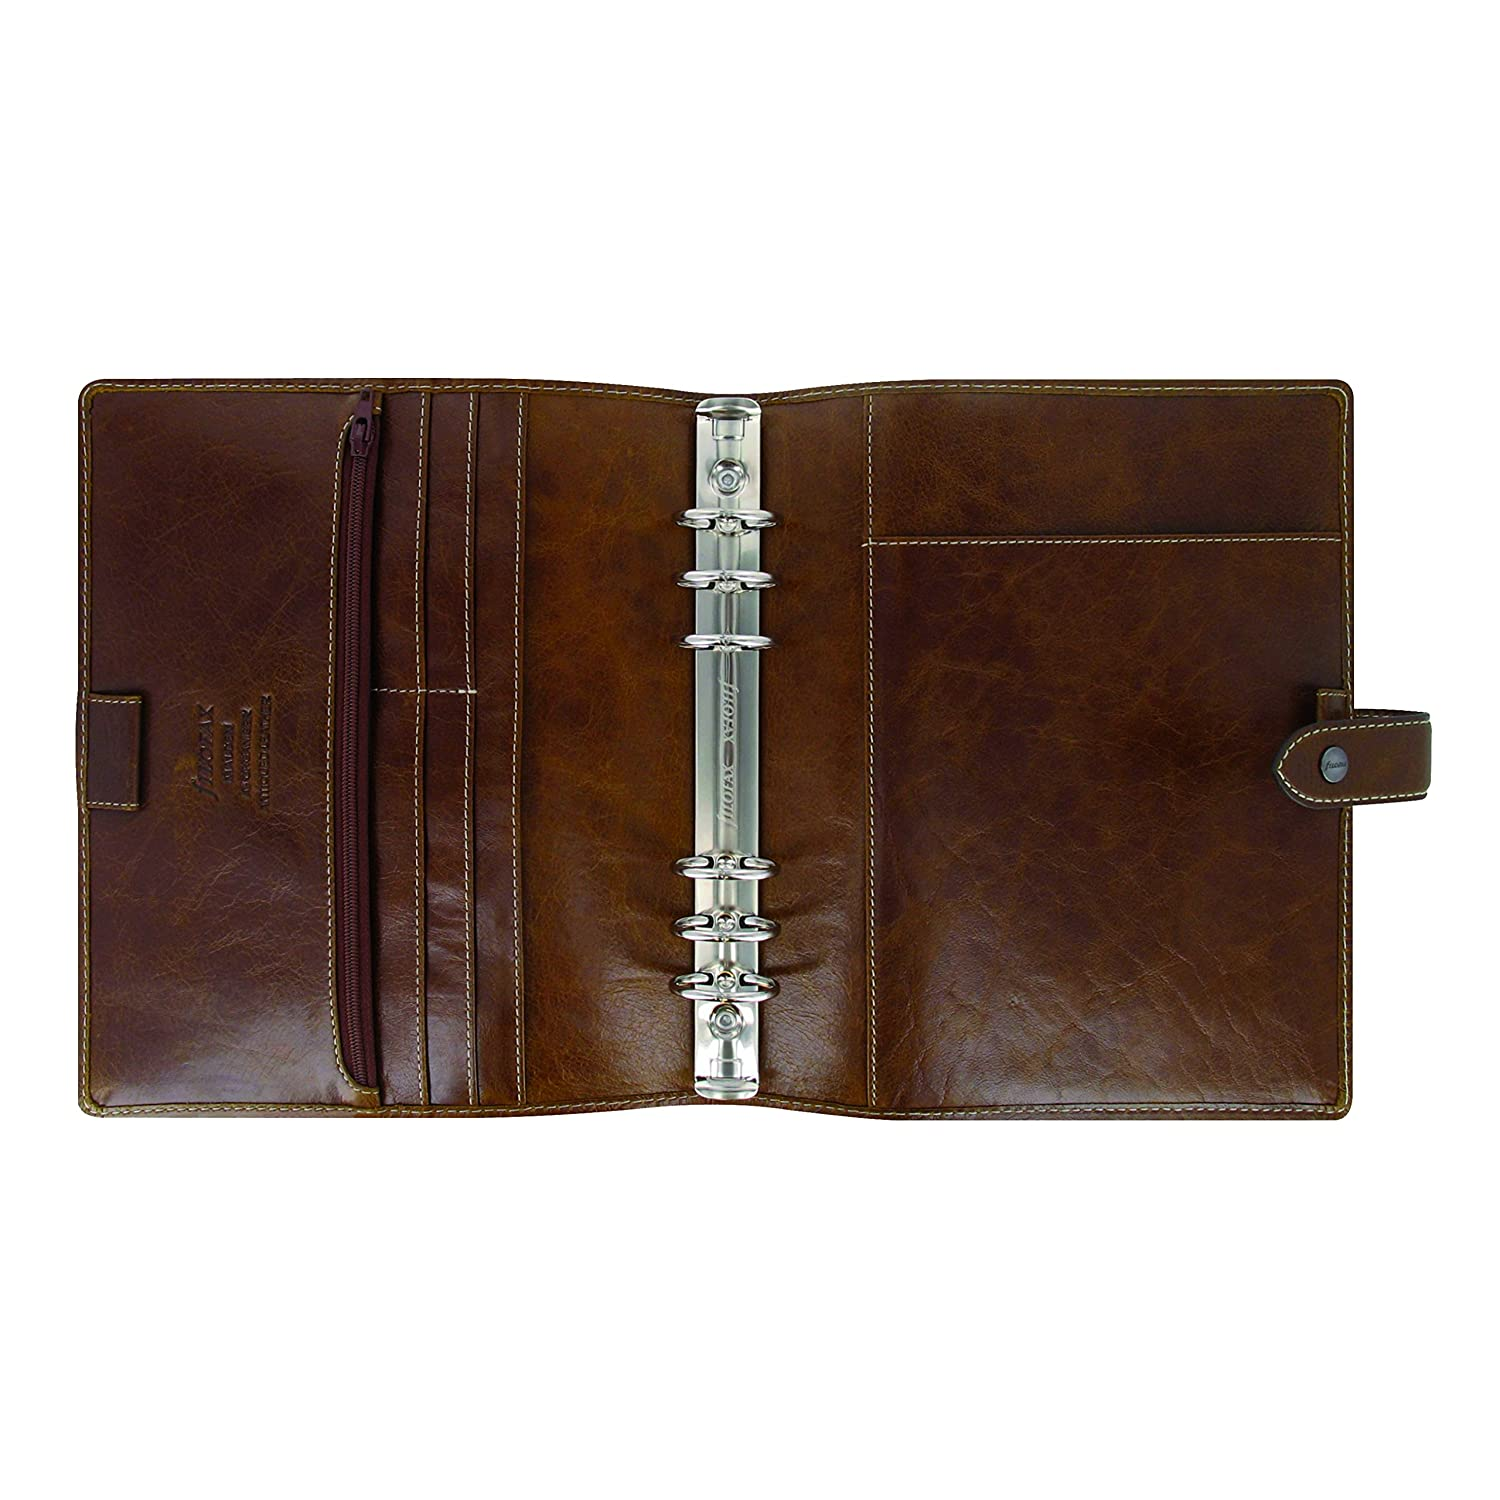 Filofax A5 Malden Organizer, Leather, Ochre, 8.25 x 5.75 (C025847-2019)